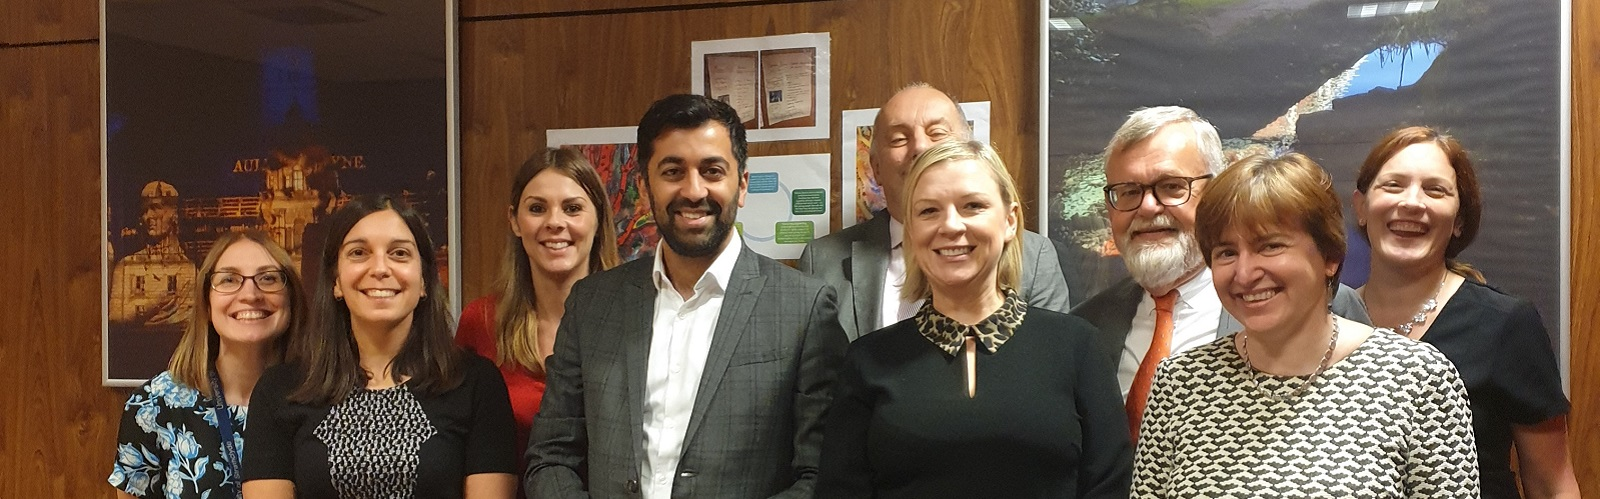 The Cabinet Secretary for Justice, Mr Humza Yousaf, visited the Centre for Youth & Criminal Justice (CYCJ)